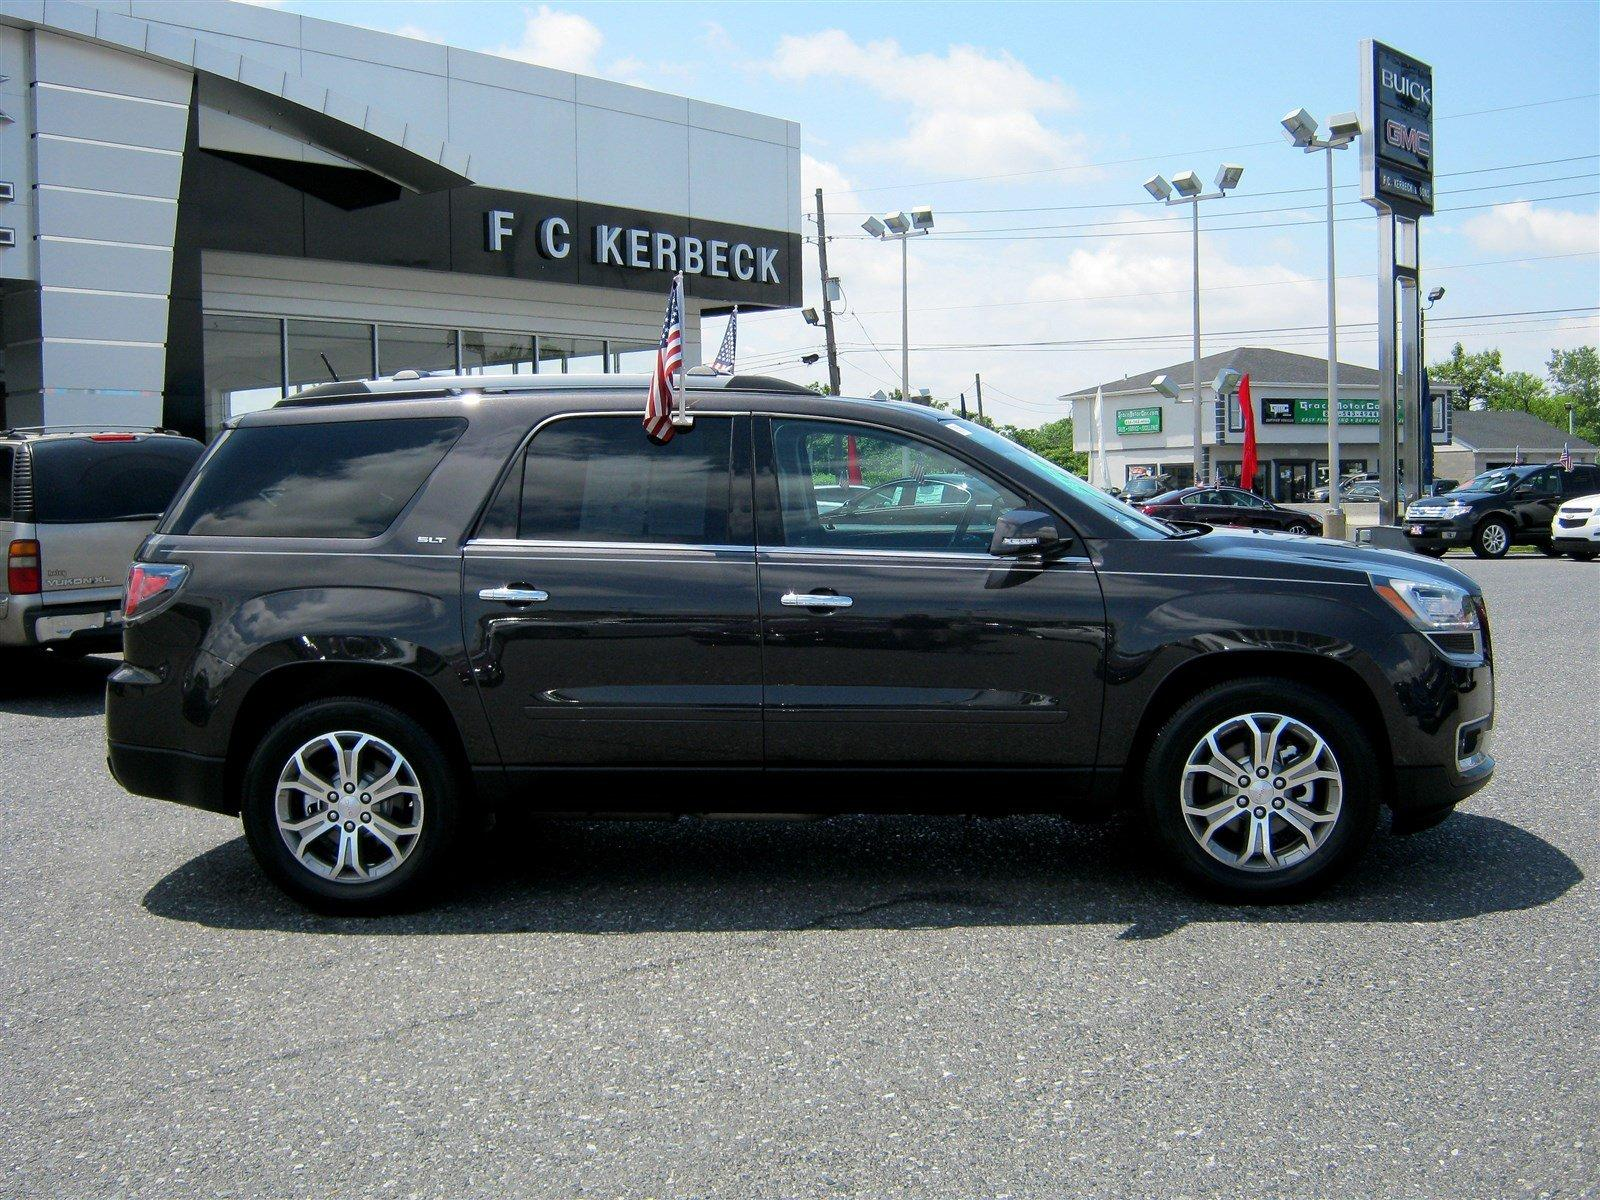 company kerbeck revenue f website history gmc owler and buick employees competitors fckerbeckbuickgmc c